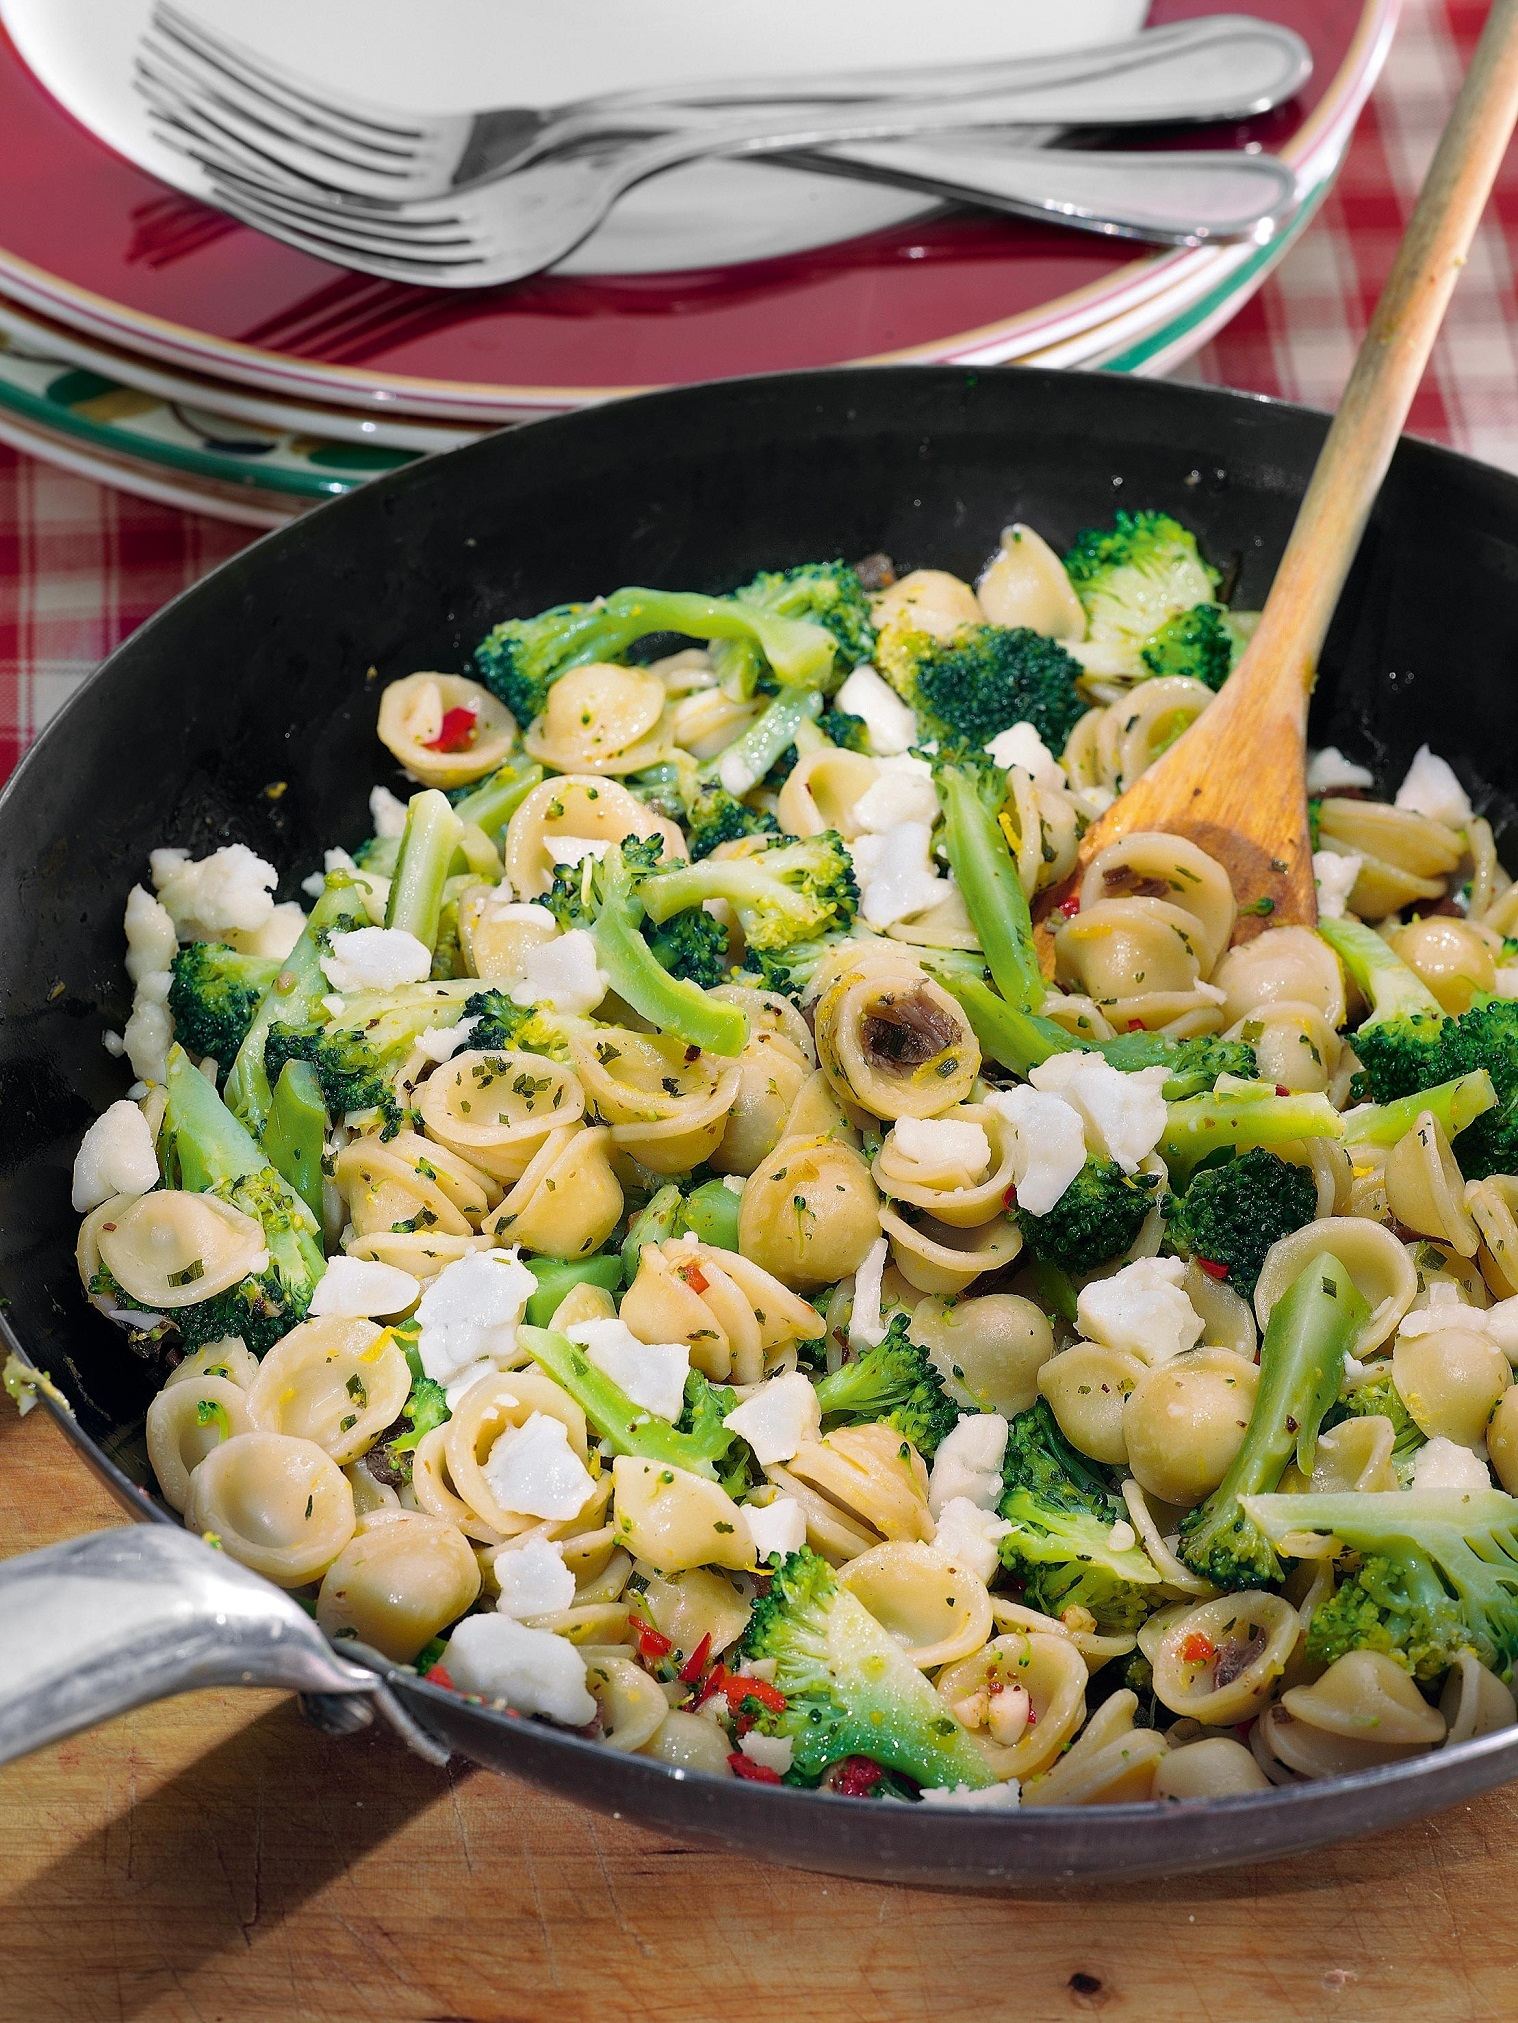 Orekkiette with broccoli and goat cheese